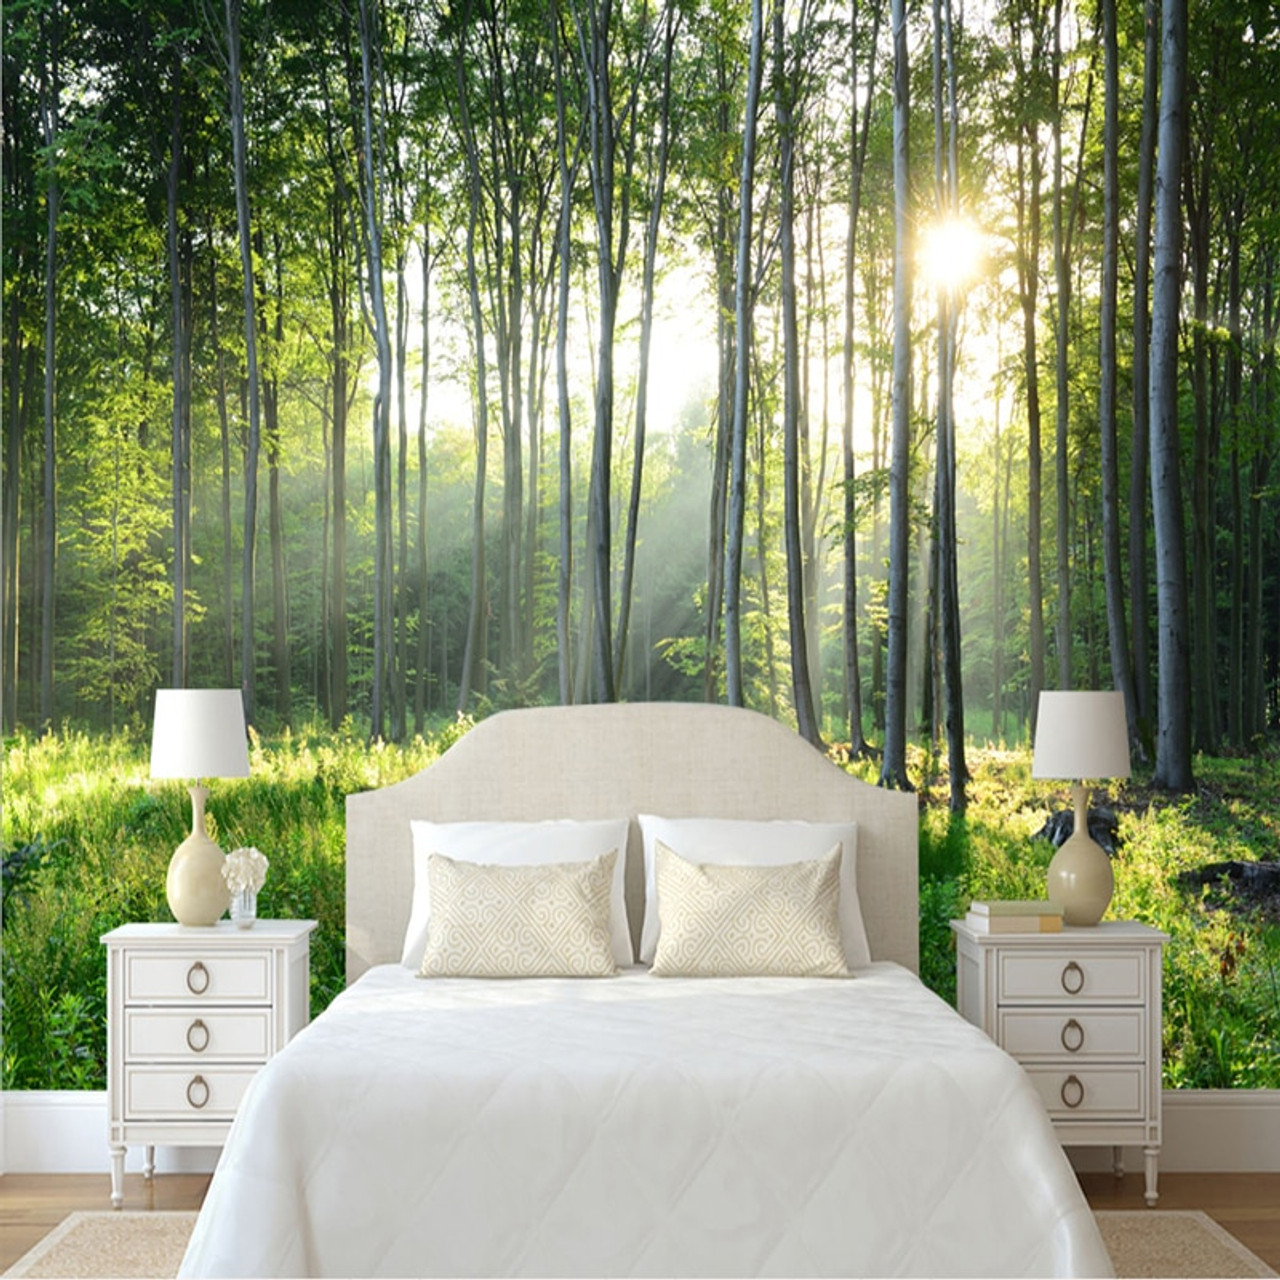 Custom Photo Wallpaper 3d Green Forest Nature Scenery Murals Living Room Bedroom Background Wall Covering Modern Home Decor 3 D Onshopdeals Com